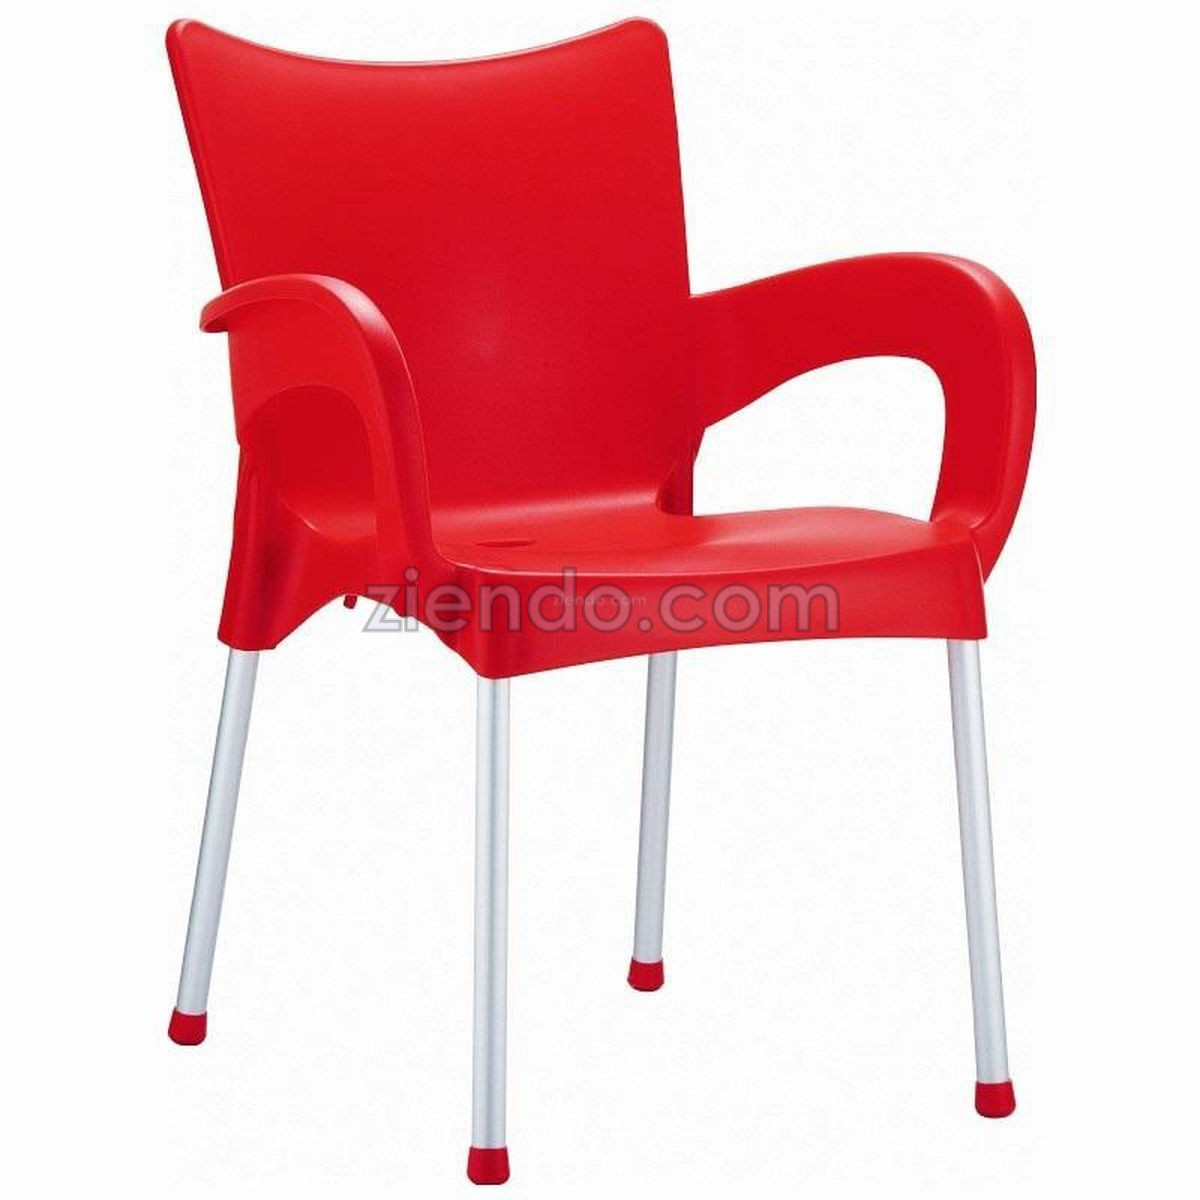 Outdoor Plastic Chair Red